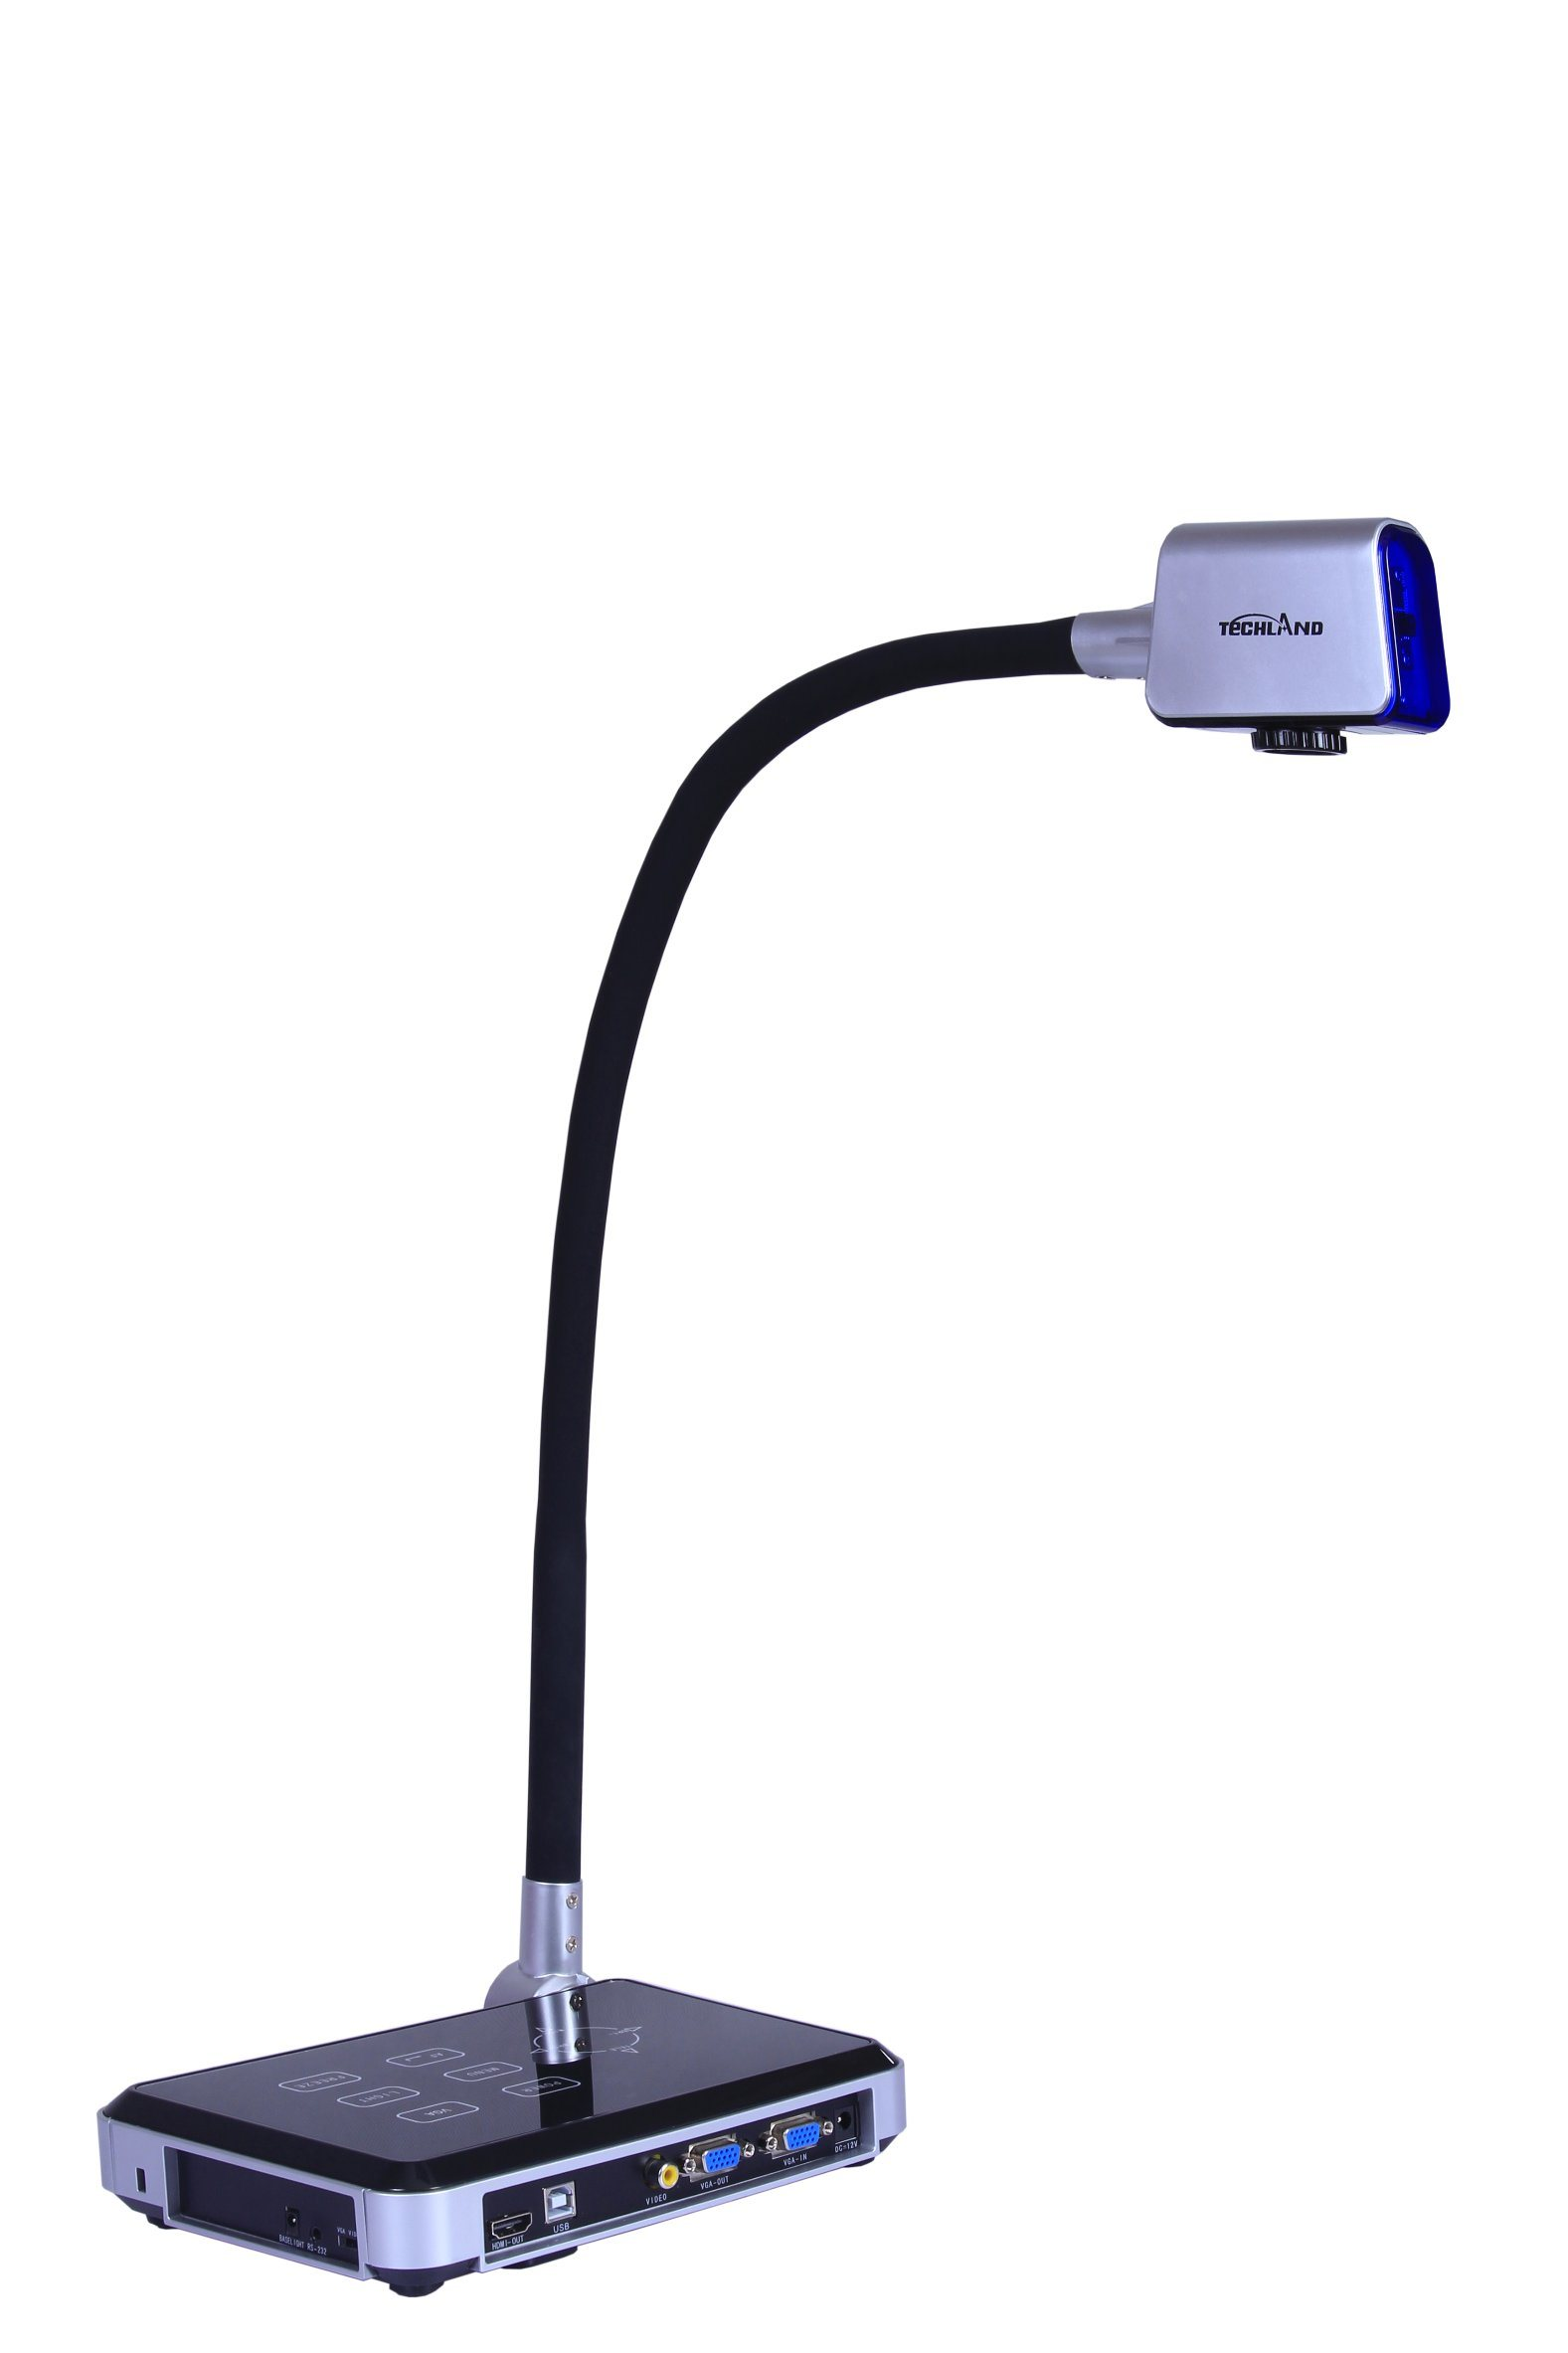 Gooseneck Multi-Media Portable Visualizer for Teaching